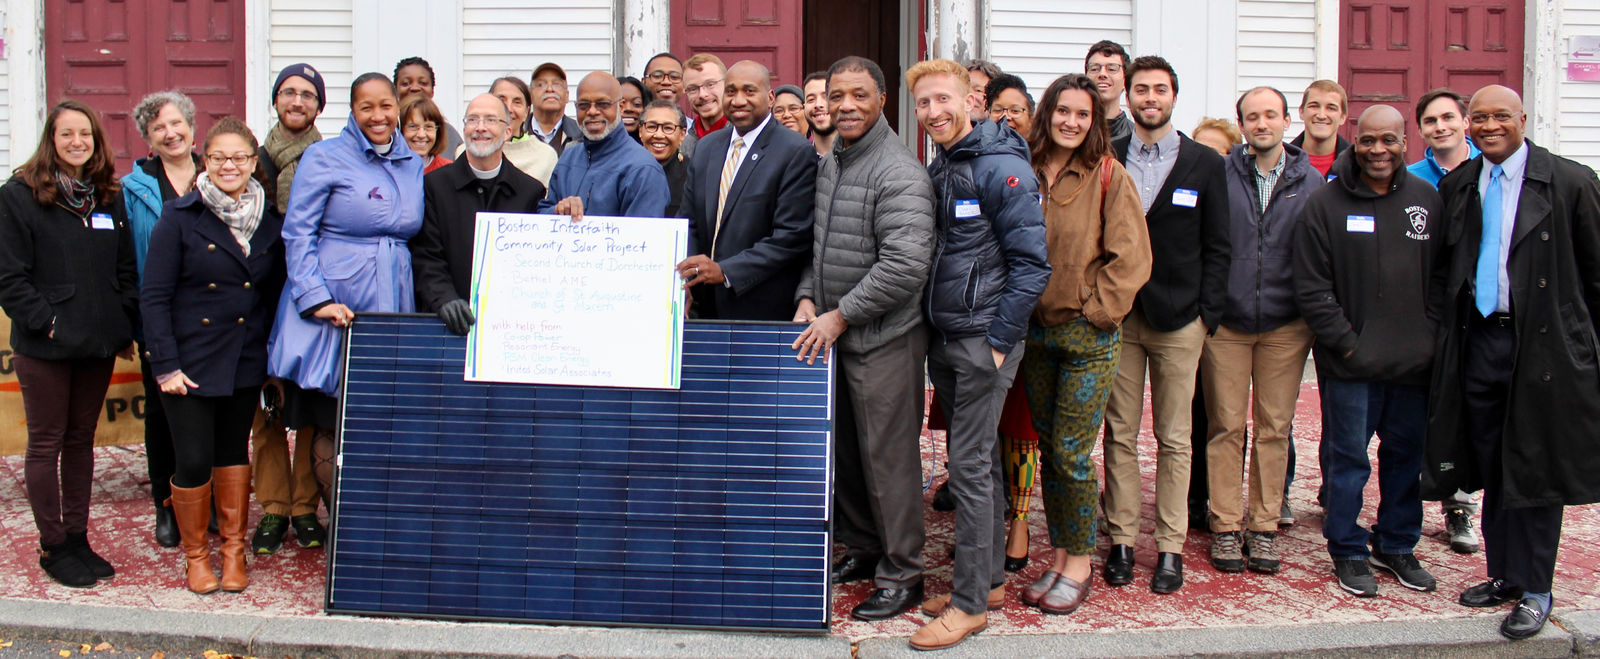 Congregations lead by example through Boston Interfaith community solar project